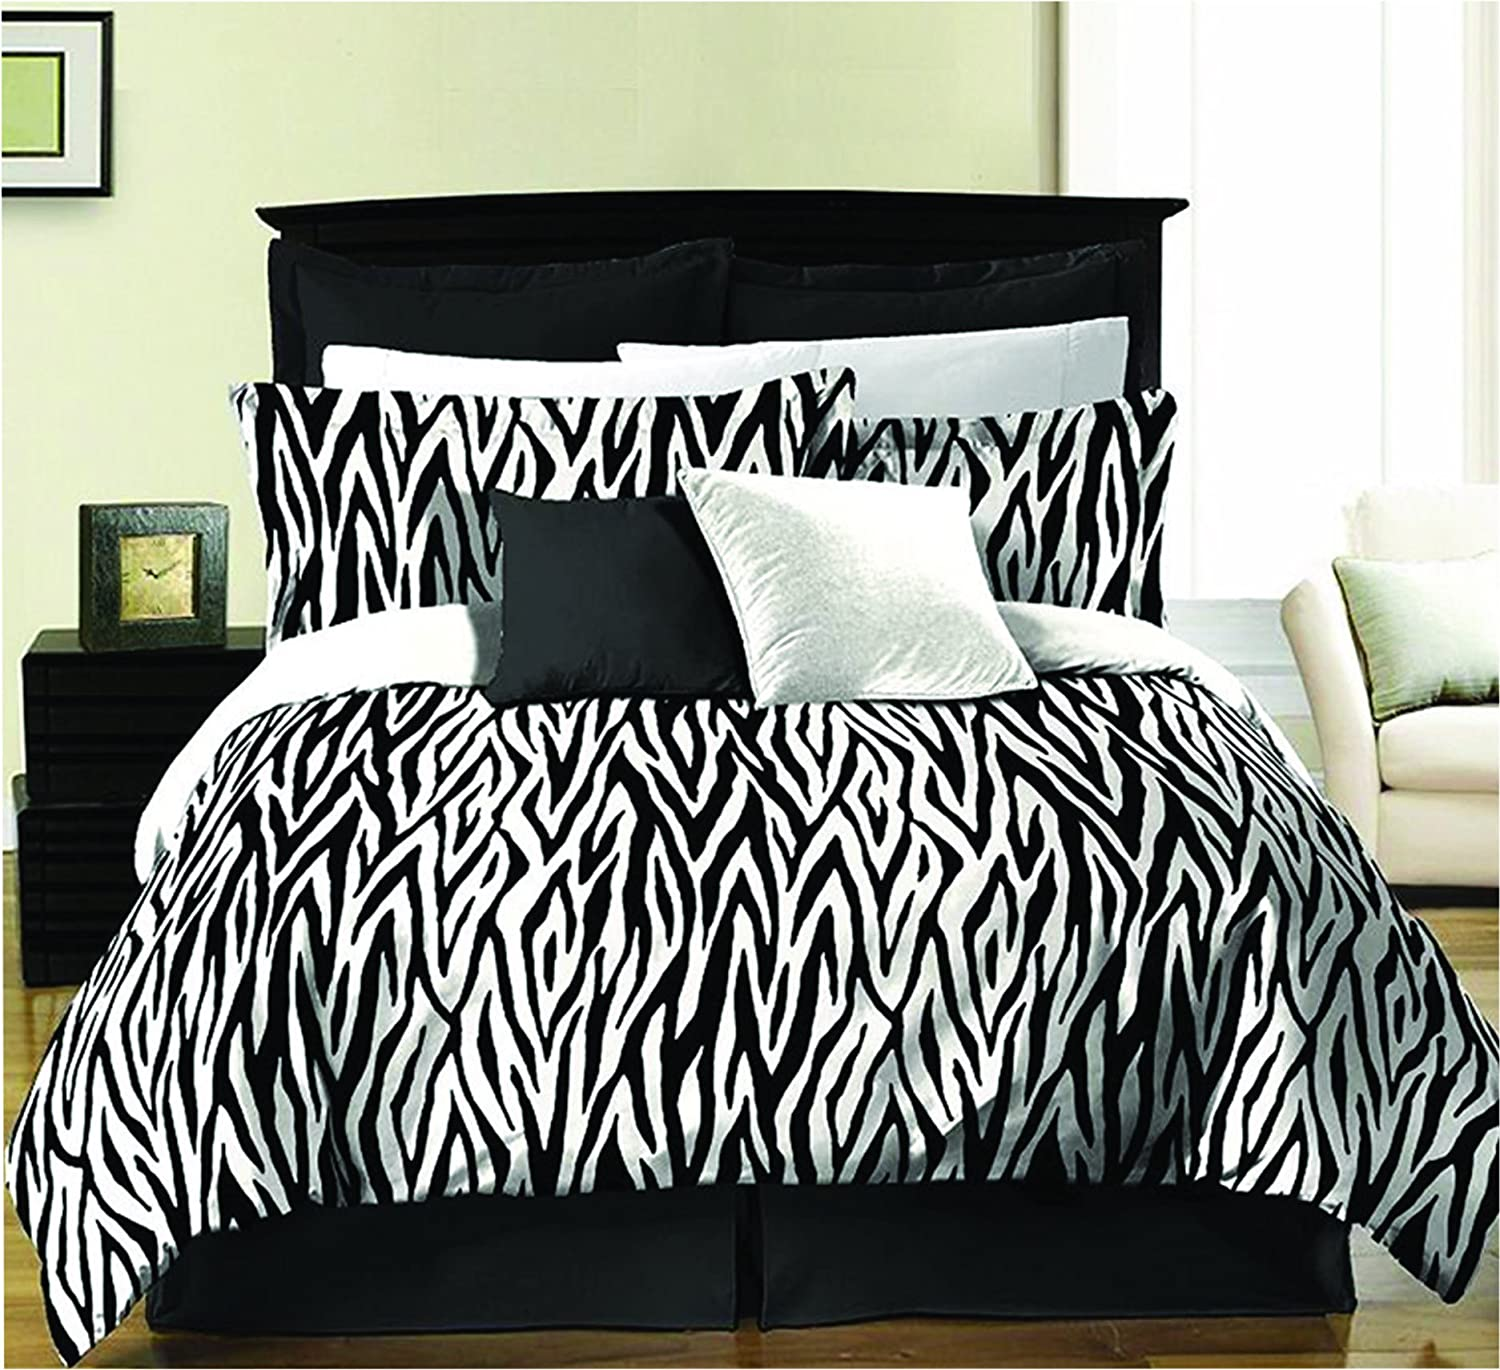 Zebra 8-piece Bed in a Bag Set Pattern Queen Linen Factory ZEBRA - QUEEN